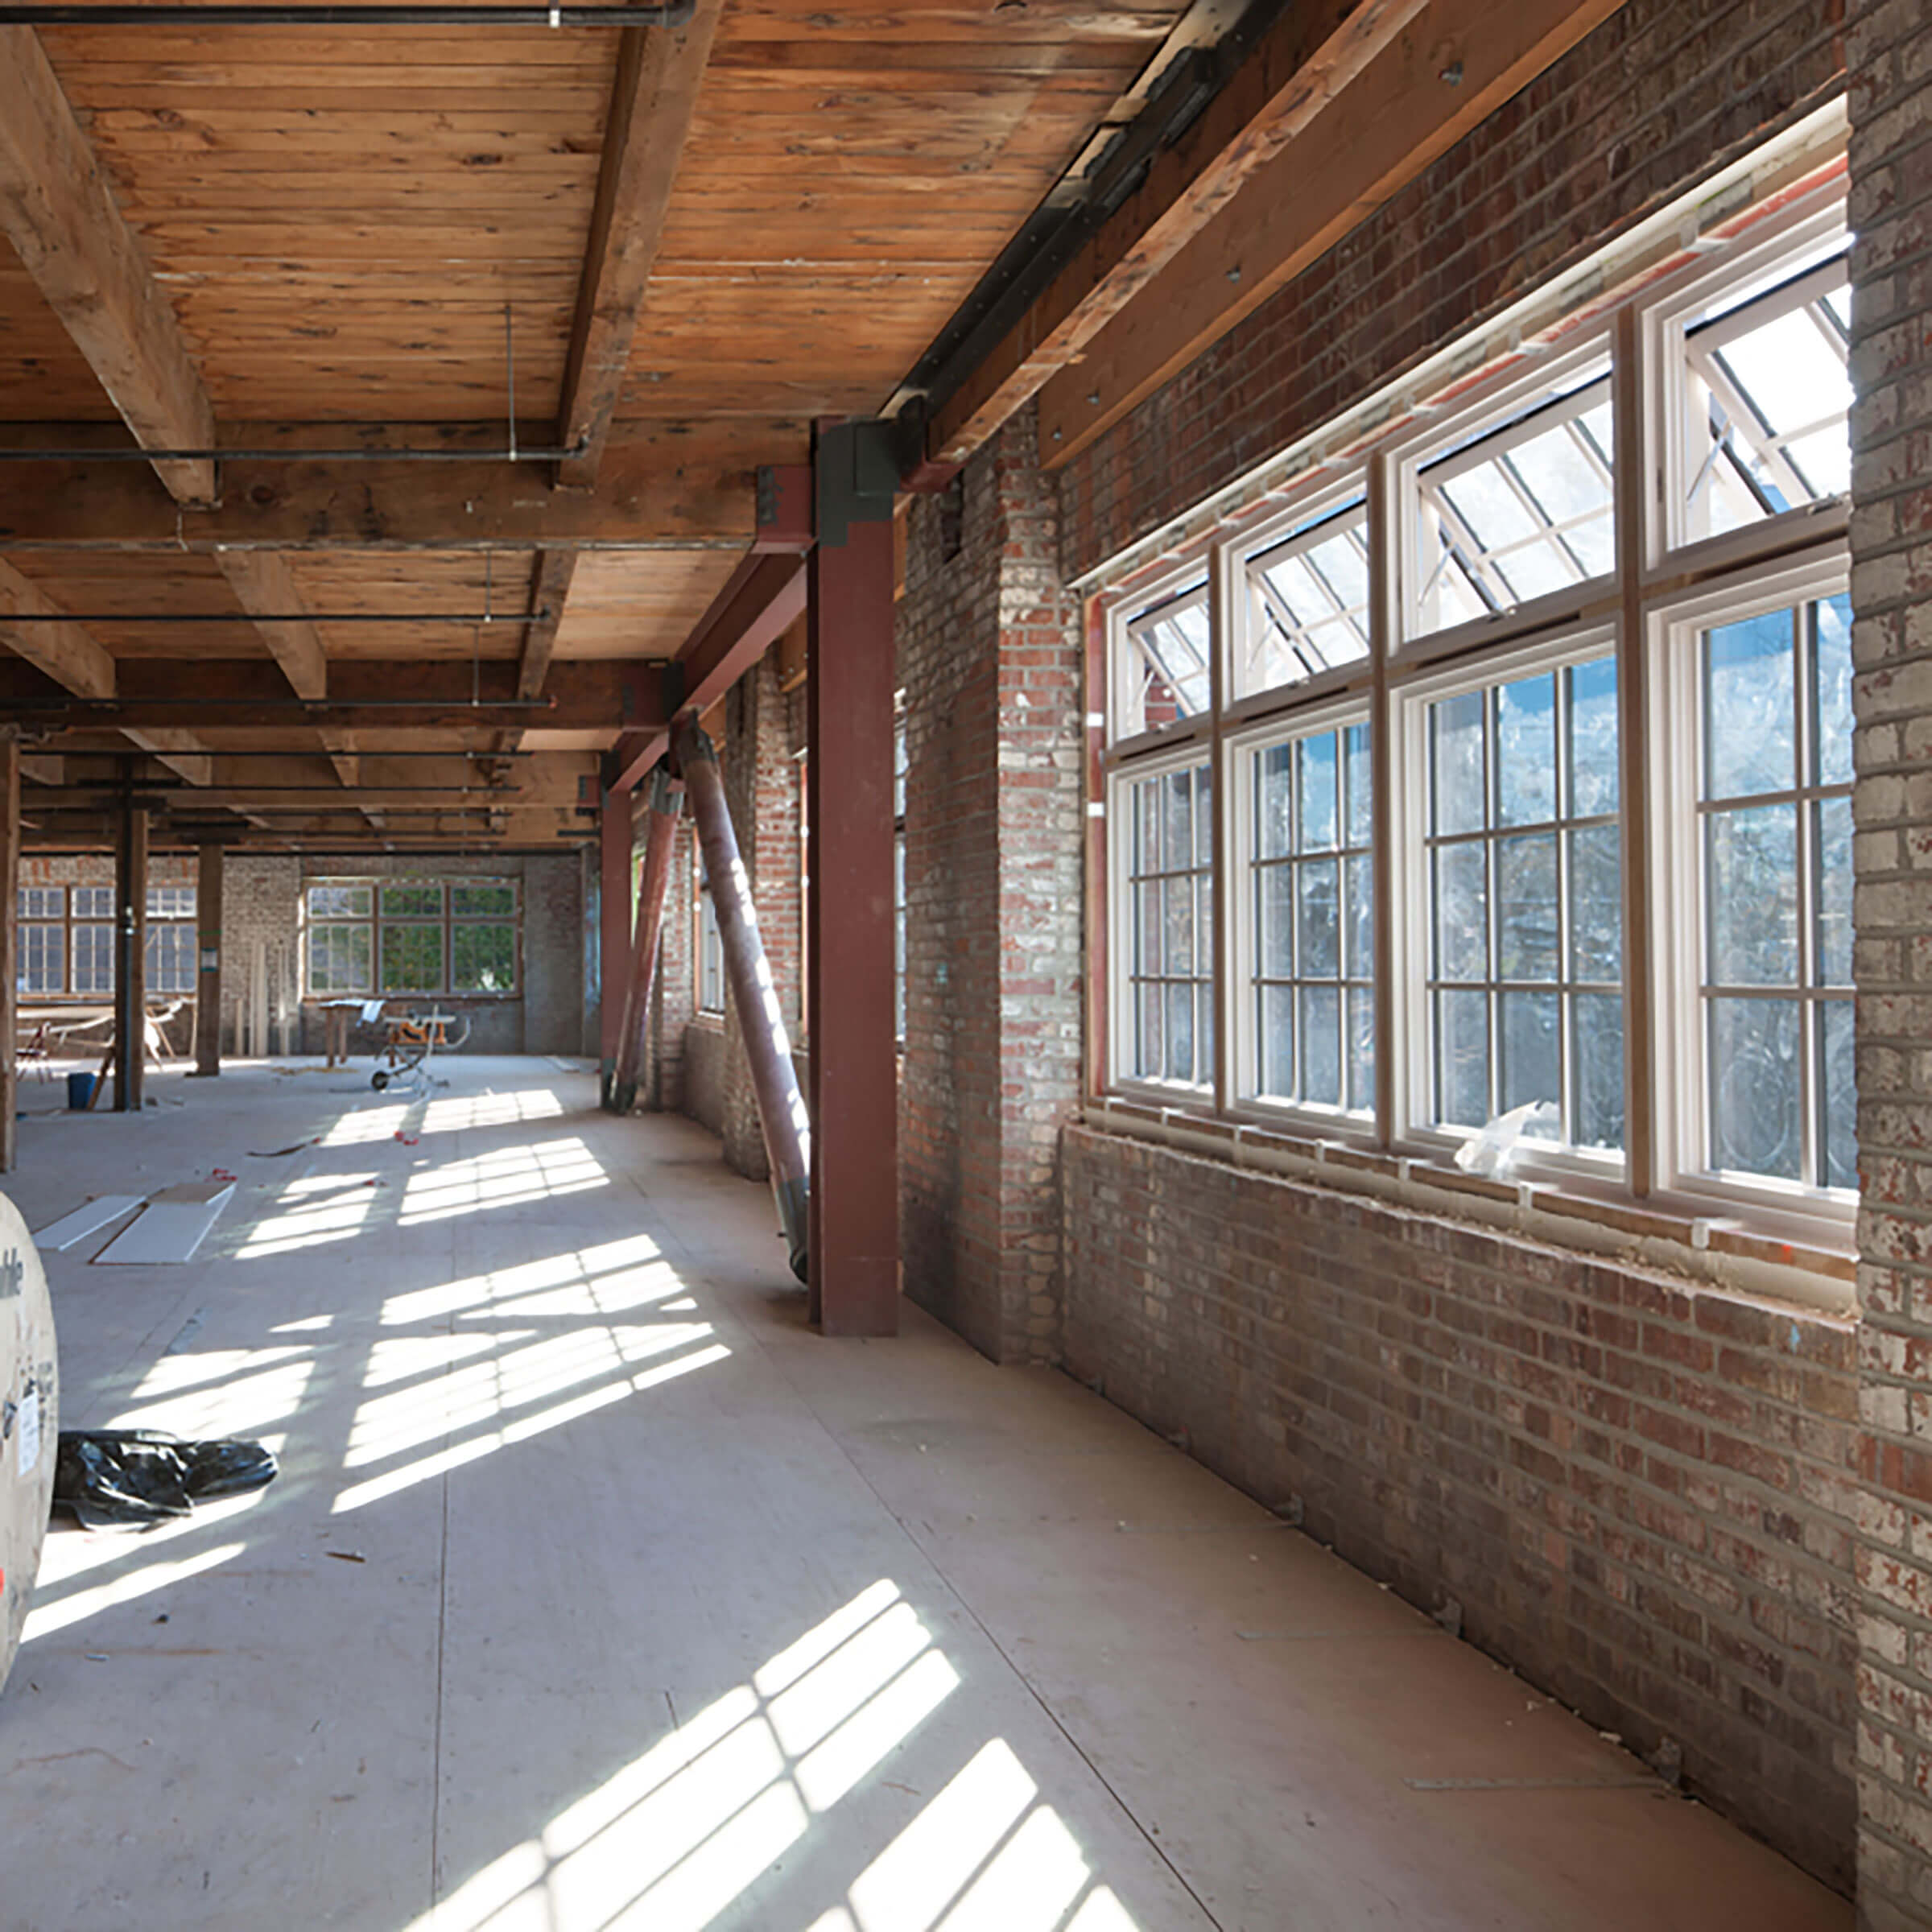 Interior View Of Union Stables With Marvin Windows